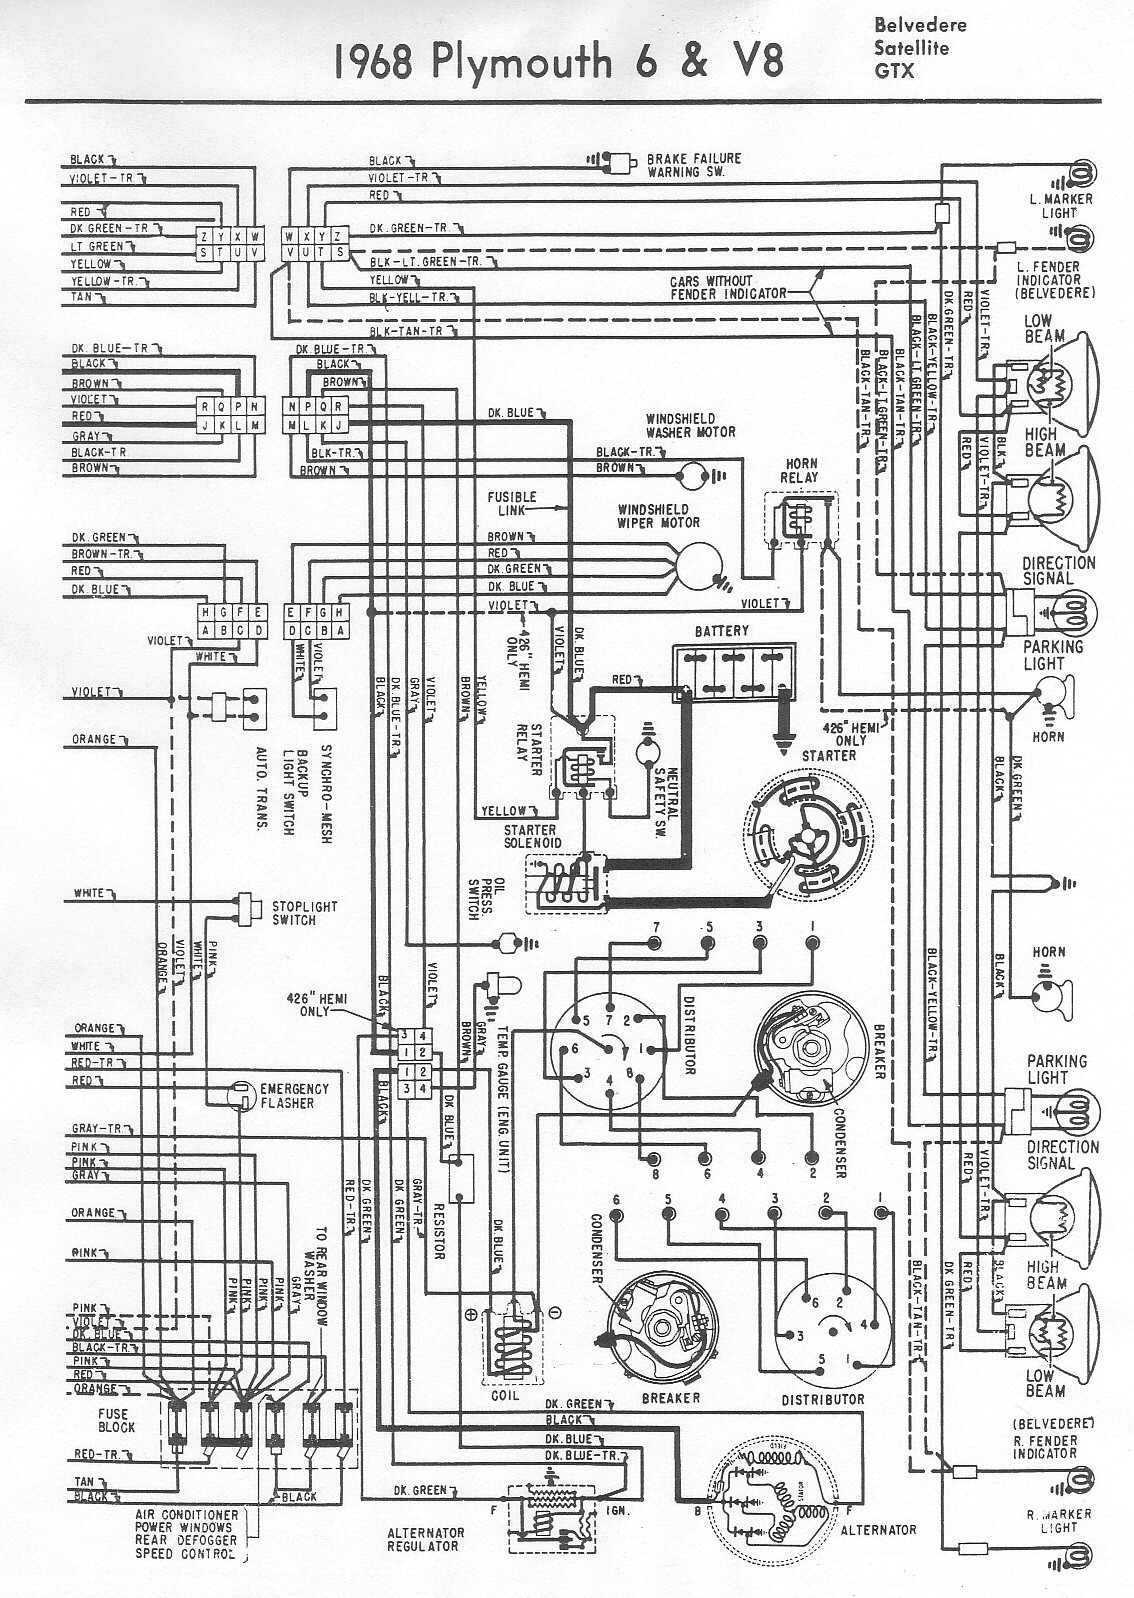 1968 plymouth barracuda wiring diagram 1969 barracuda wiring diagram [wrg-7963] 69 roadrunner wiring diagram dashboard light